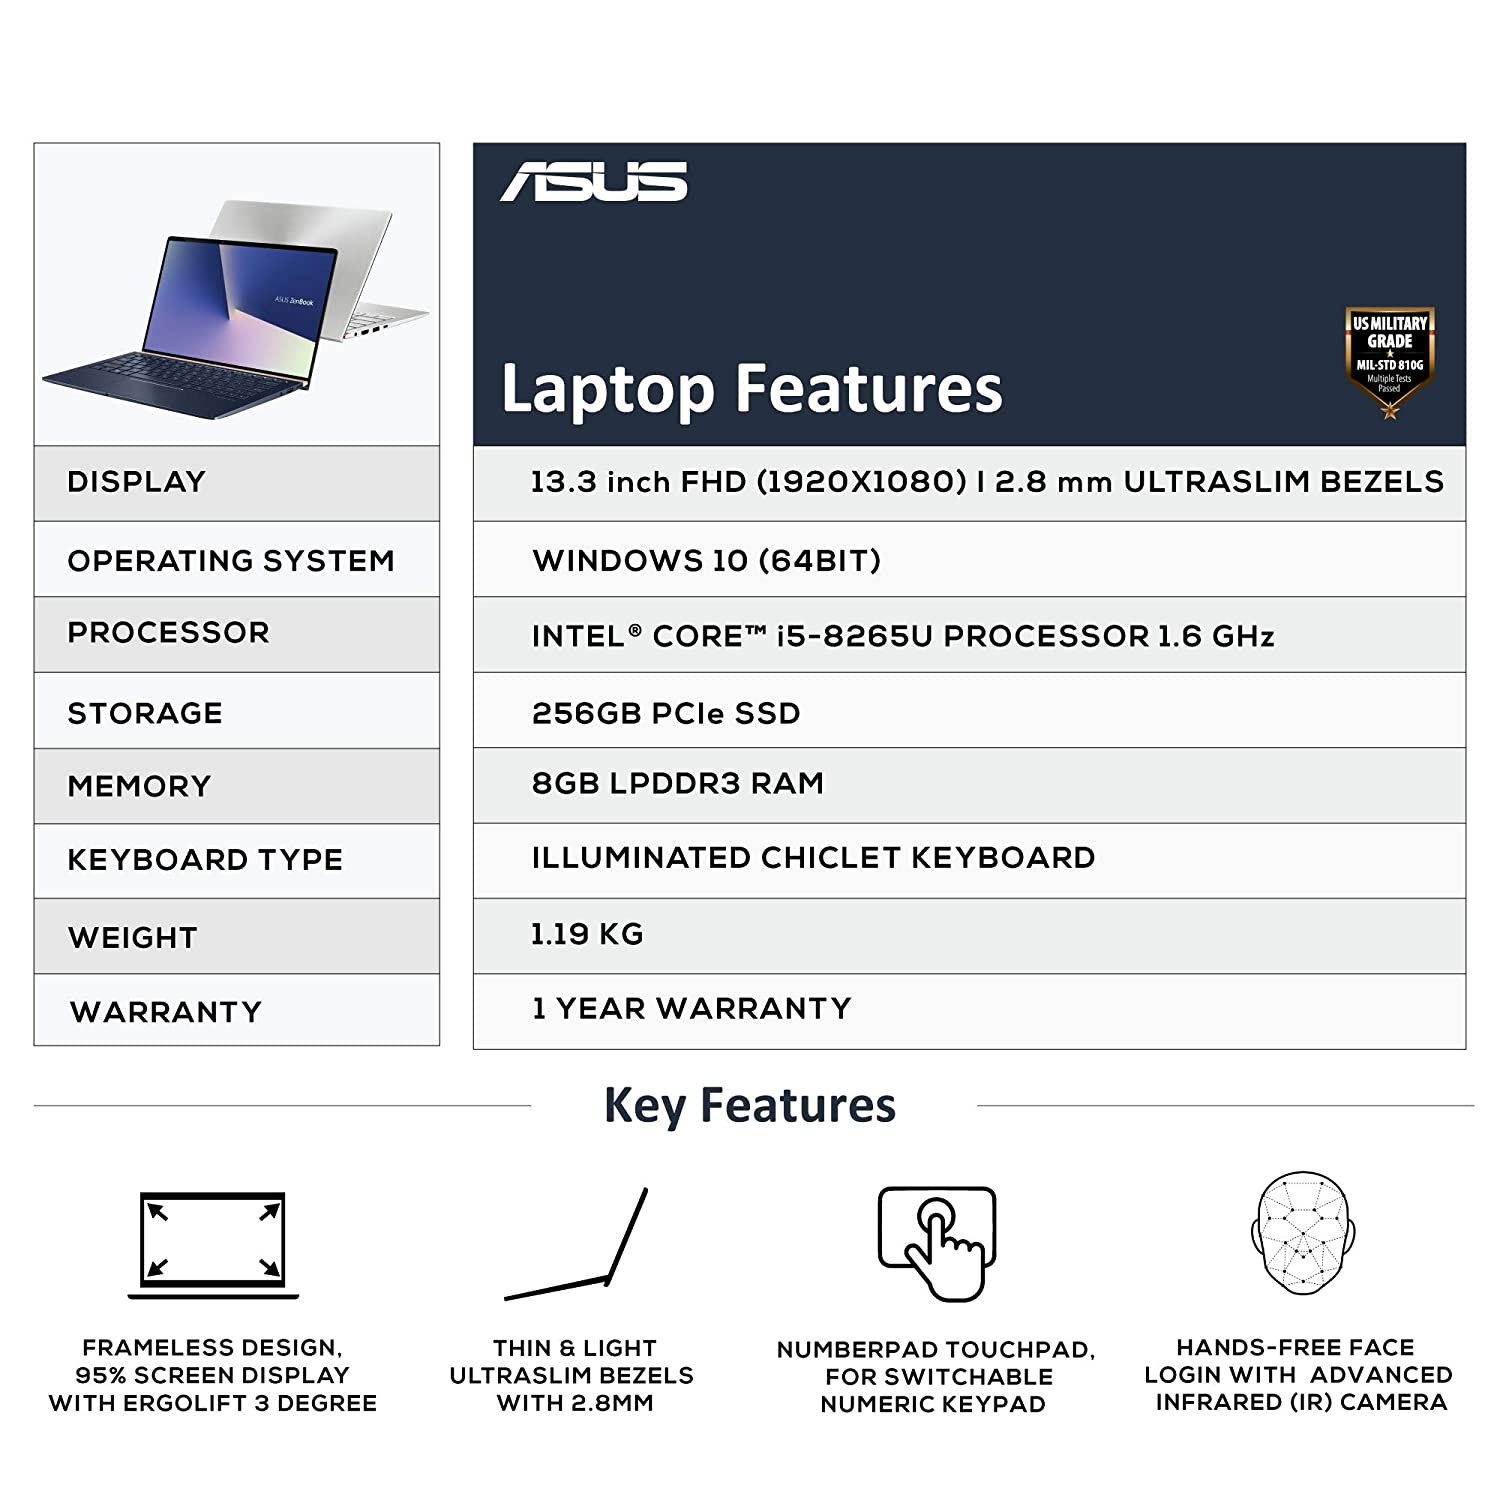 ASUS ZenBook 13 UX333FA-A4011T 13 3-inch FHD Thin and Light Laptop (8th Gen  Intel Core i5-8265U/8GB RAM/256GB PCIe SSD/Windows 10/Integrated